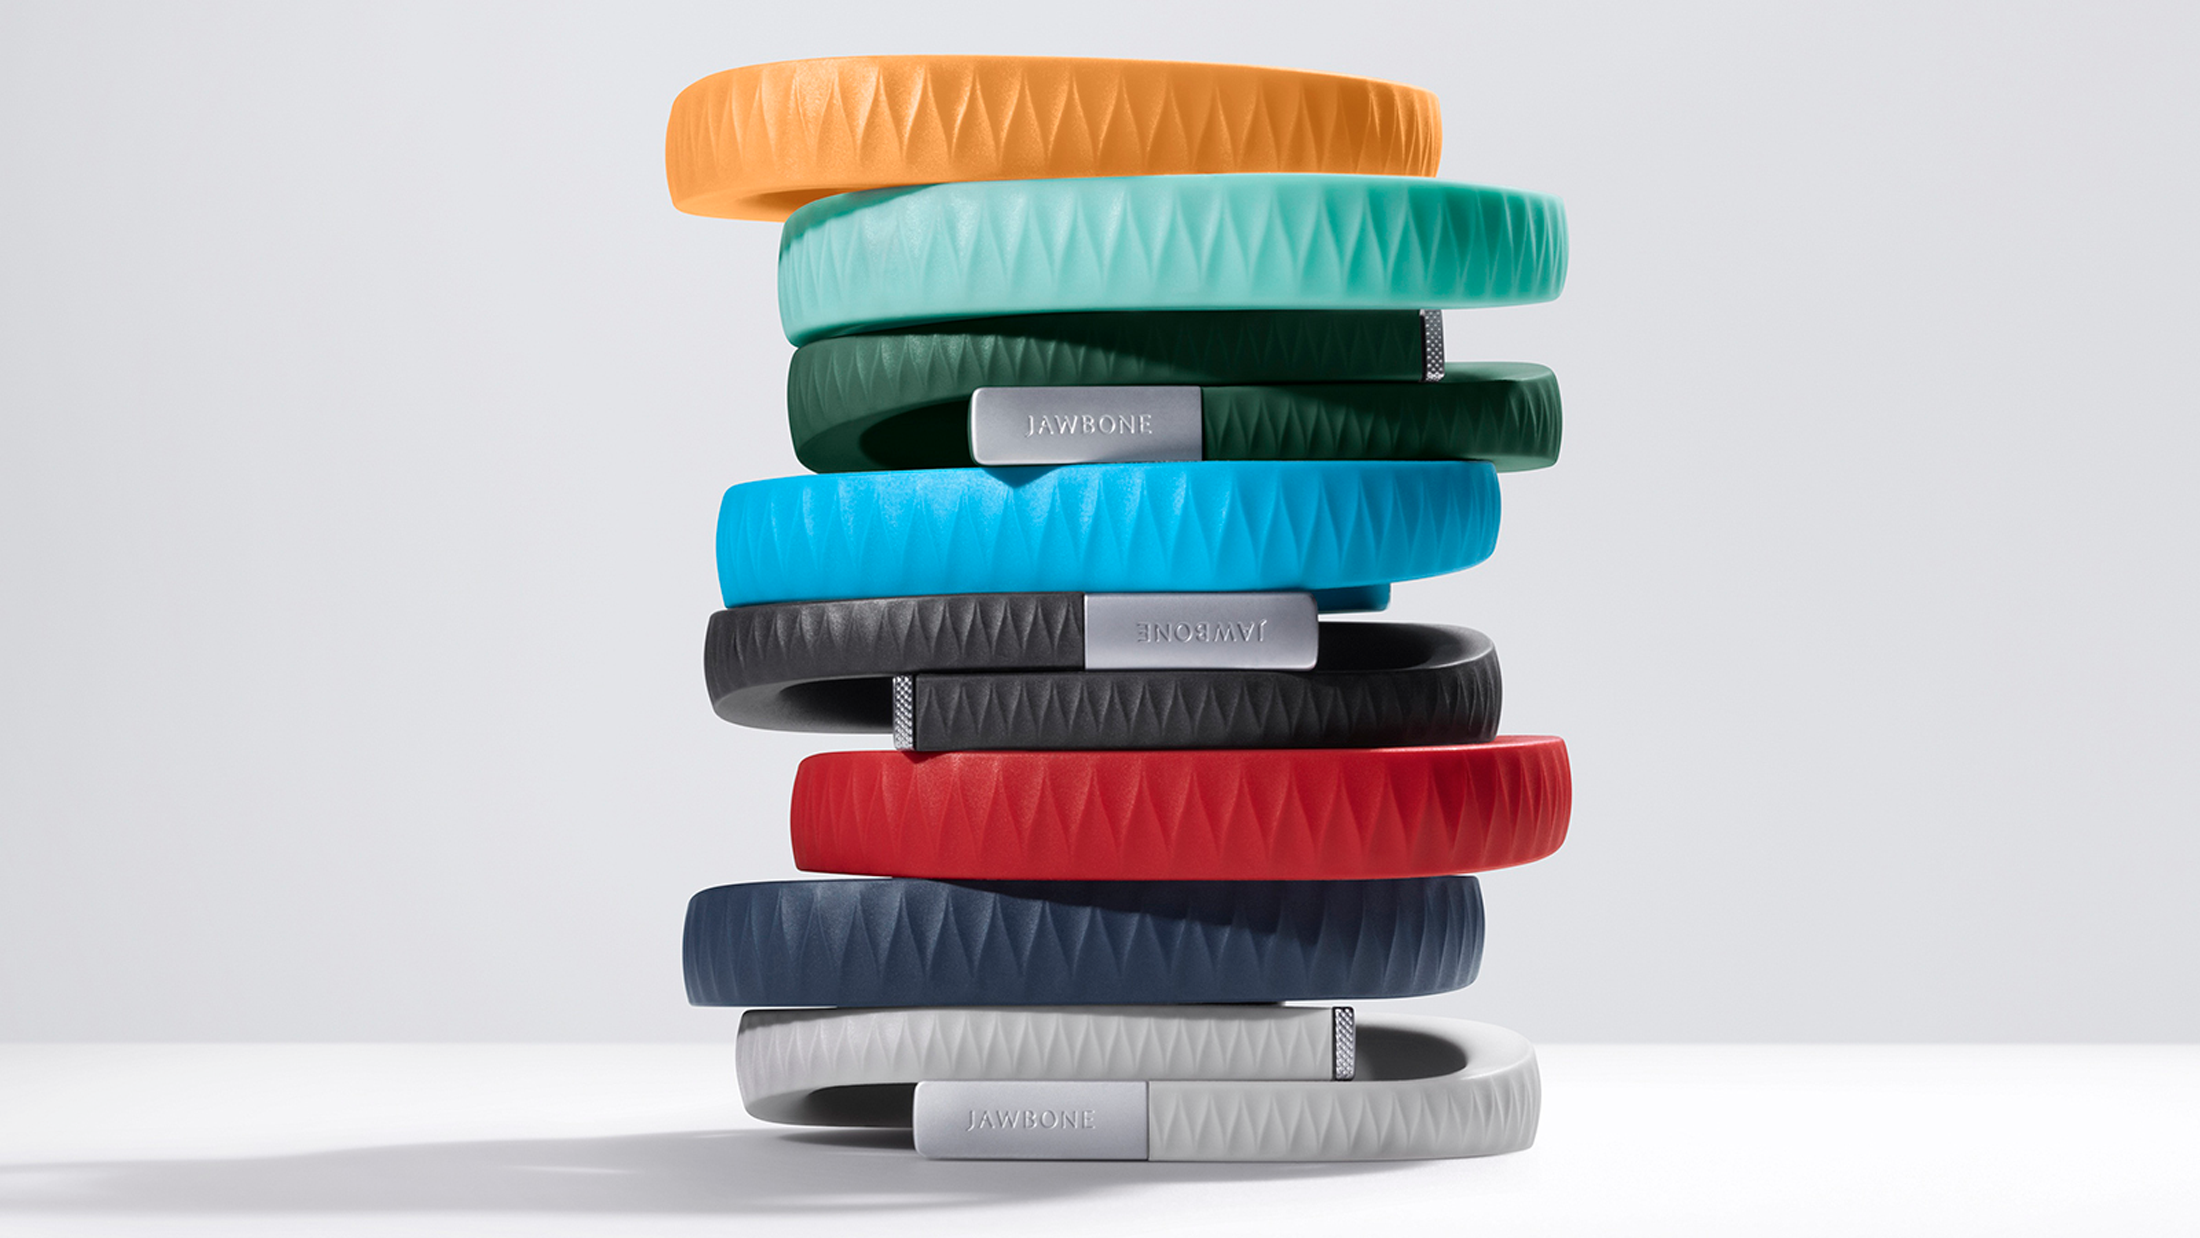 Are You A Super Bowl Fan? Jawbone Knows Sleeping Habits During Game!